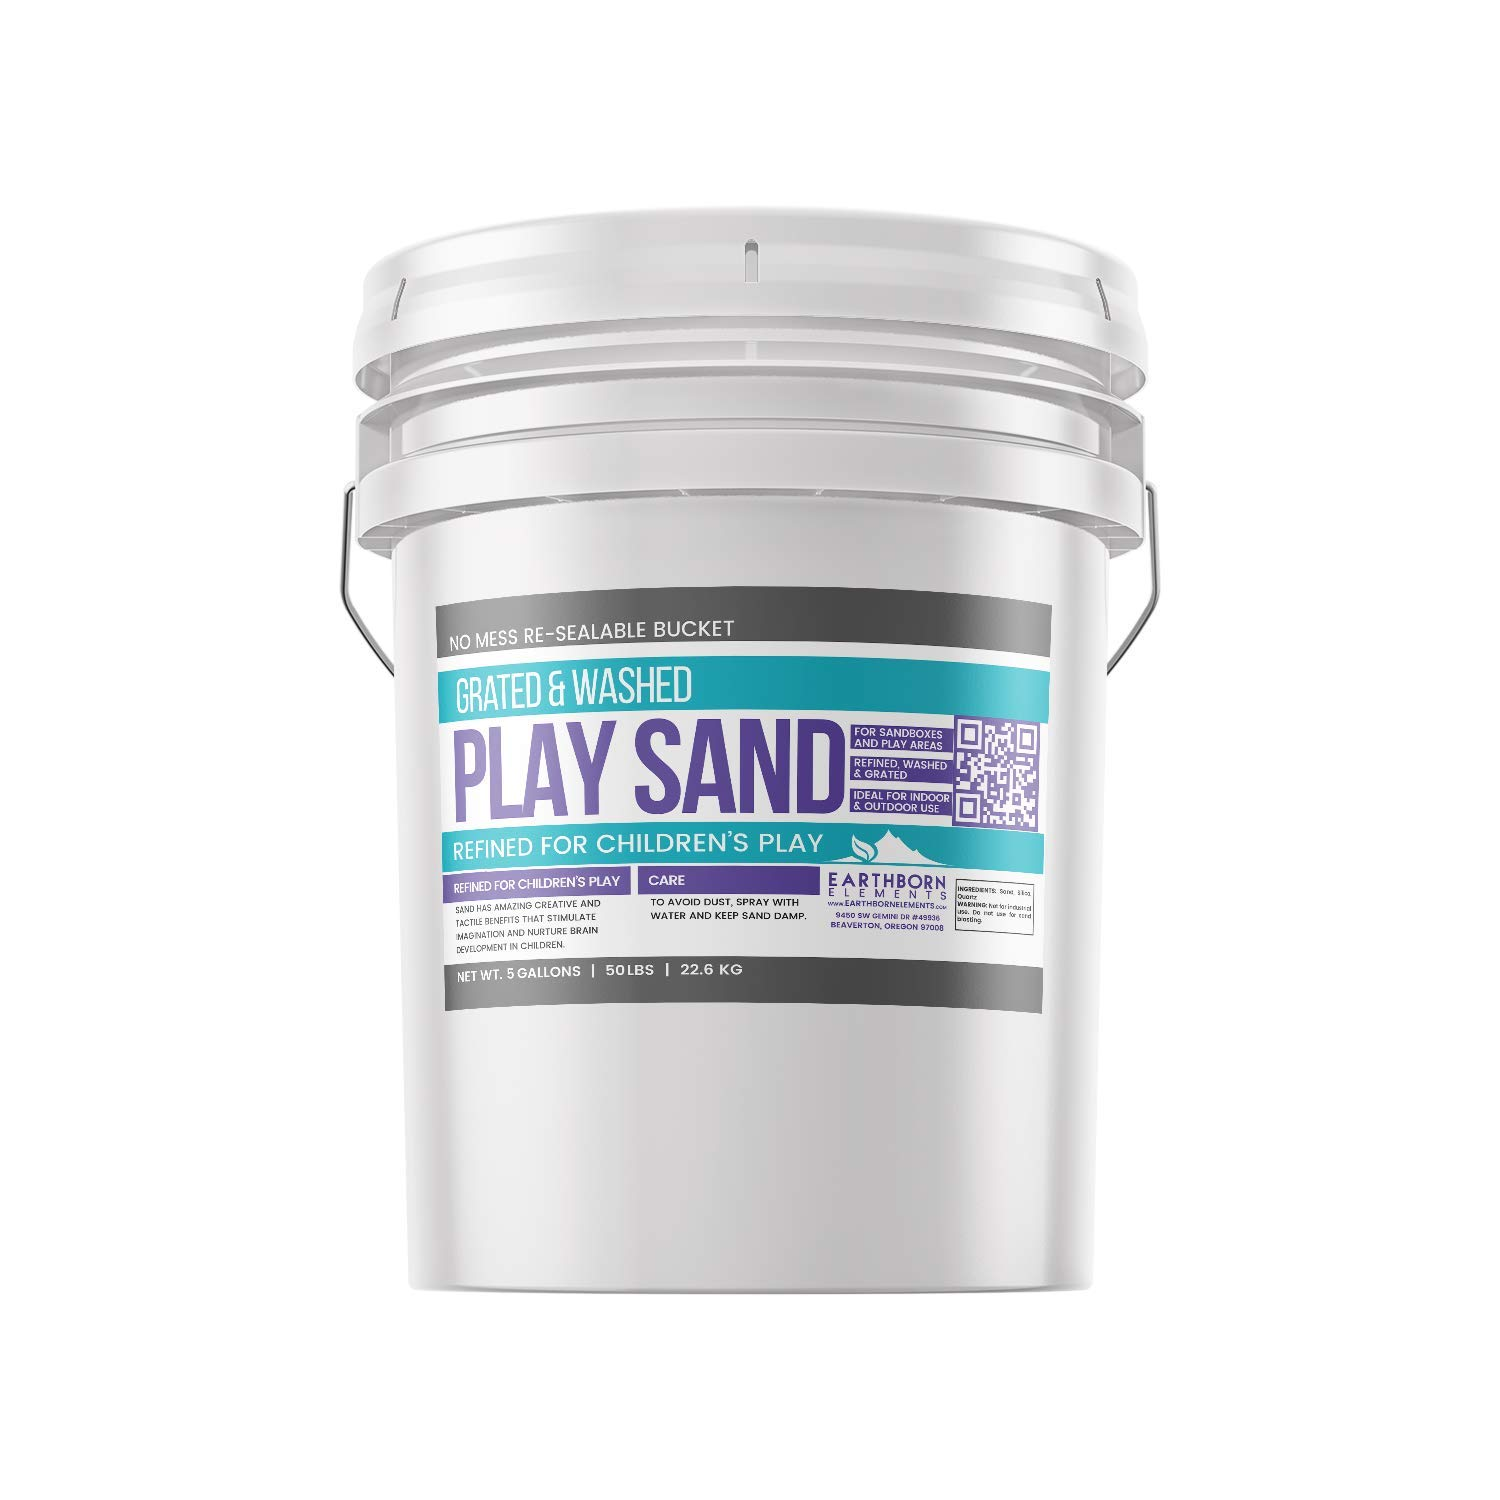 Play Sand, 5 Gallon Bucket by Earthborn Elements, Highest Quality, Building & Molding, Promotes Creativity, Sandbox & Play Areas, Indoor/Outdoor, Resealable Bucket (5 gallons) by Earthborn Elements